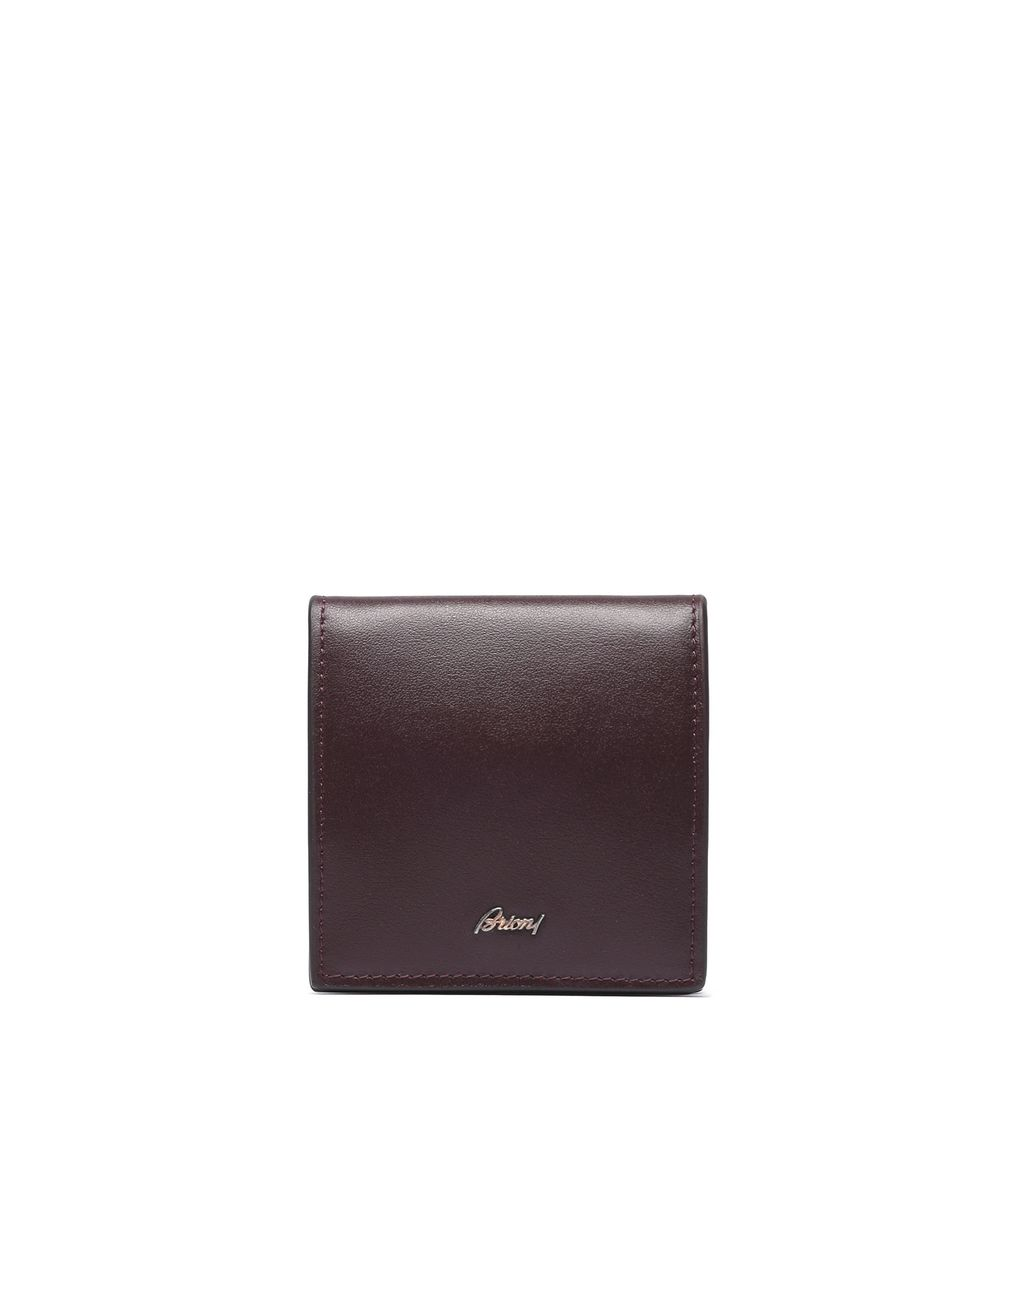 BRIONI Oxblood Coin Pocket Leather Goods Man f